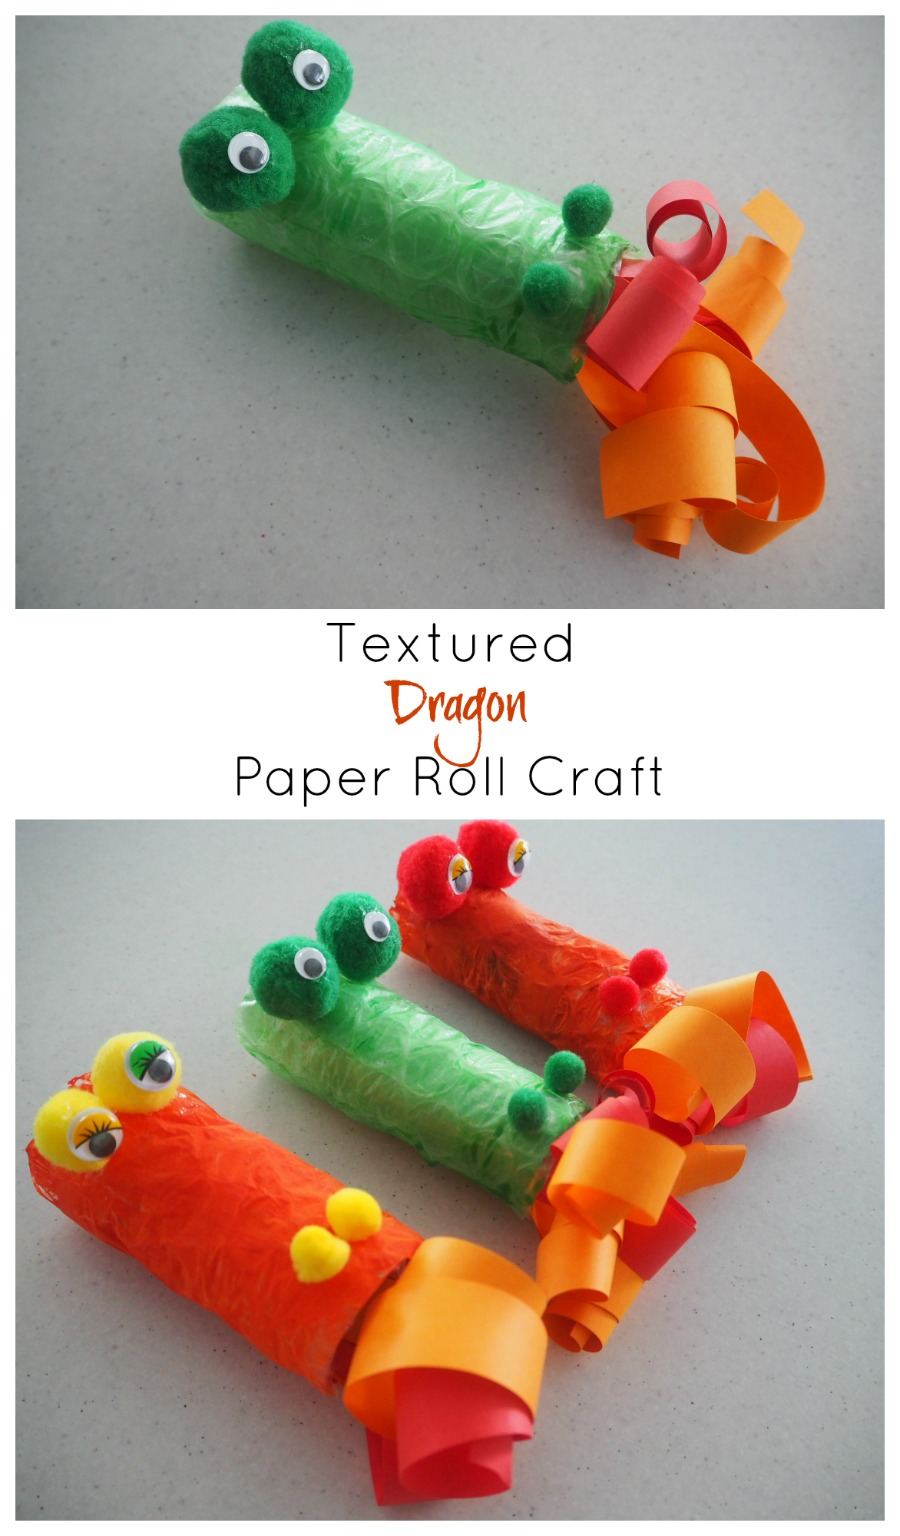 textured dragon paper roll craft